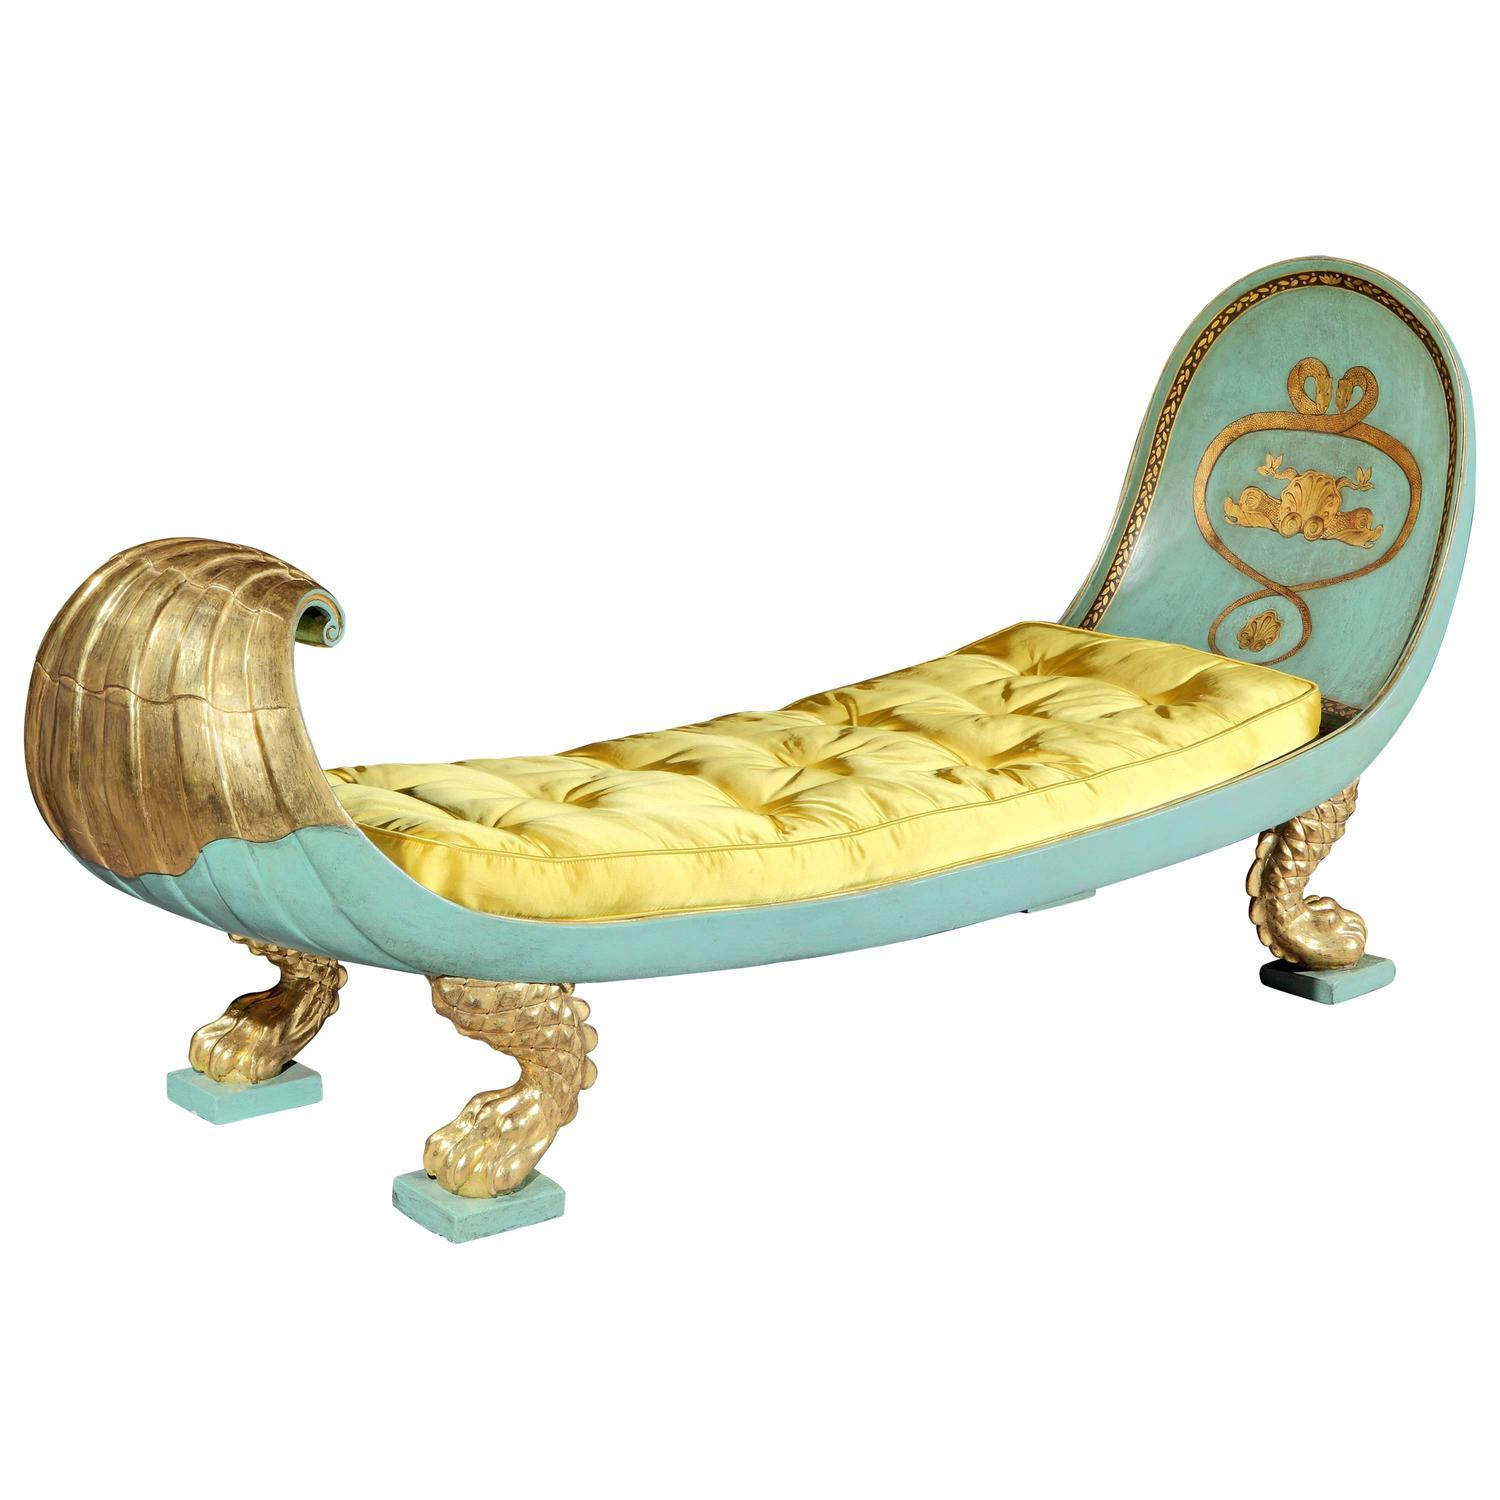 Regency daybed chaise longue english regency circa 1810 for Chaise longue daybed